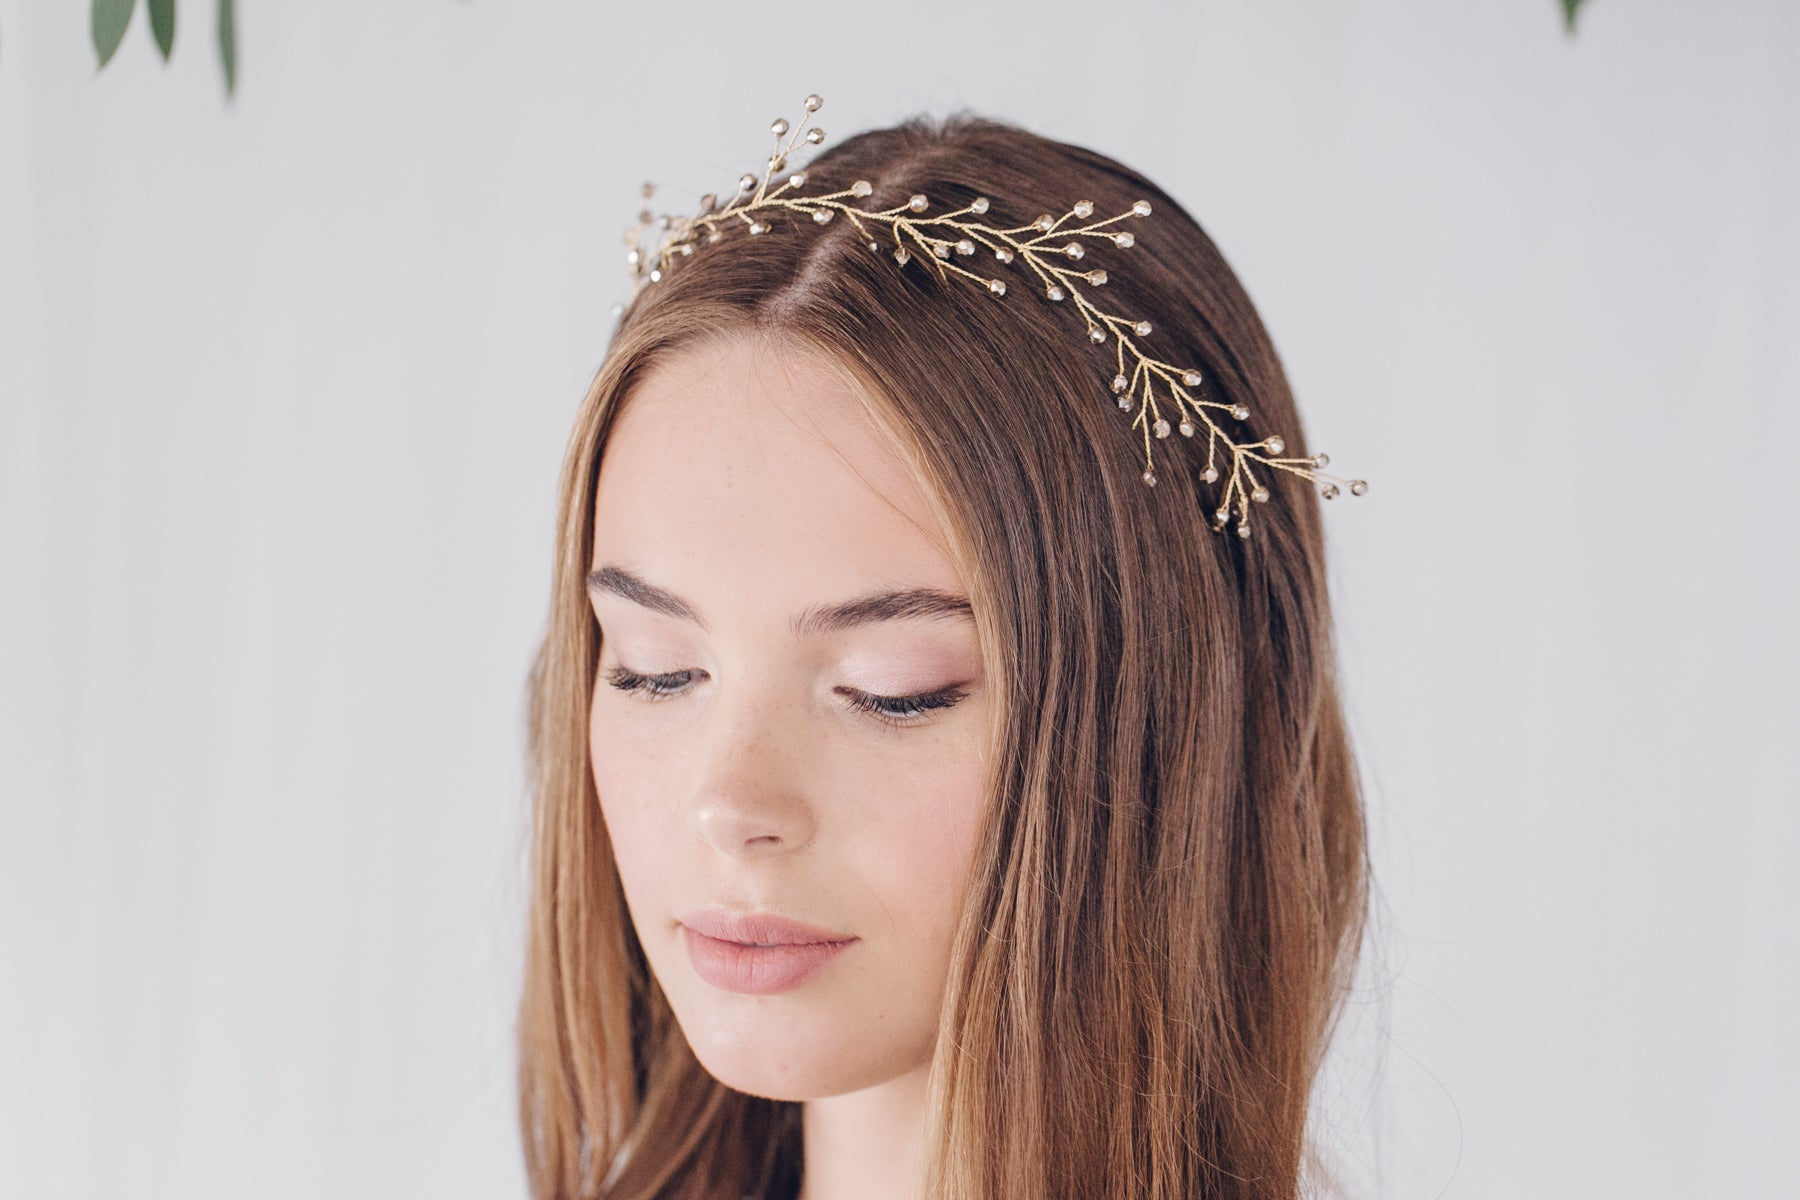 Gold rosemary twiggy branch ribbon tie hairvine tiara